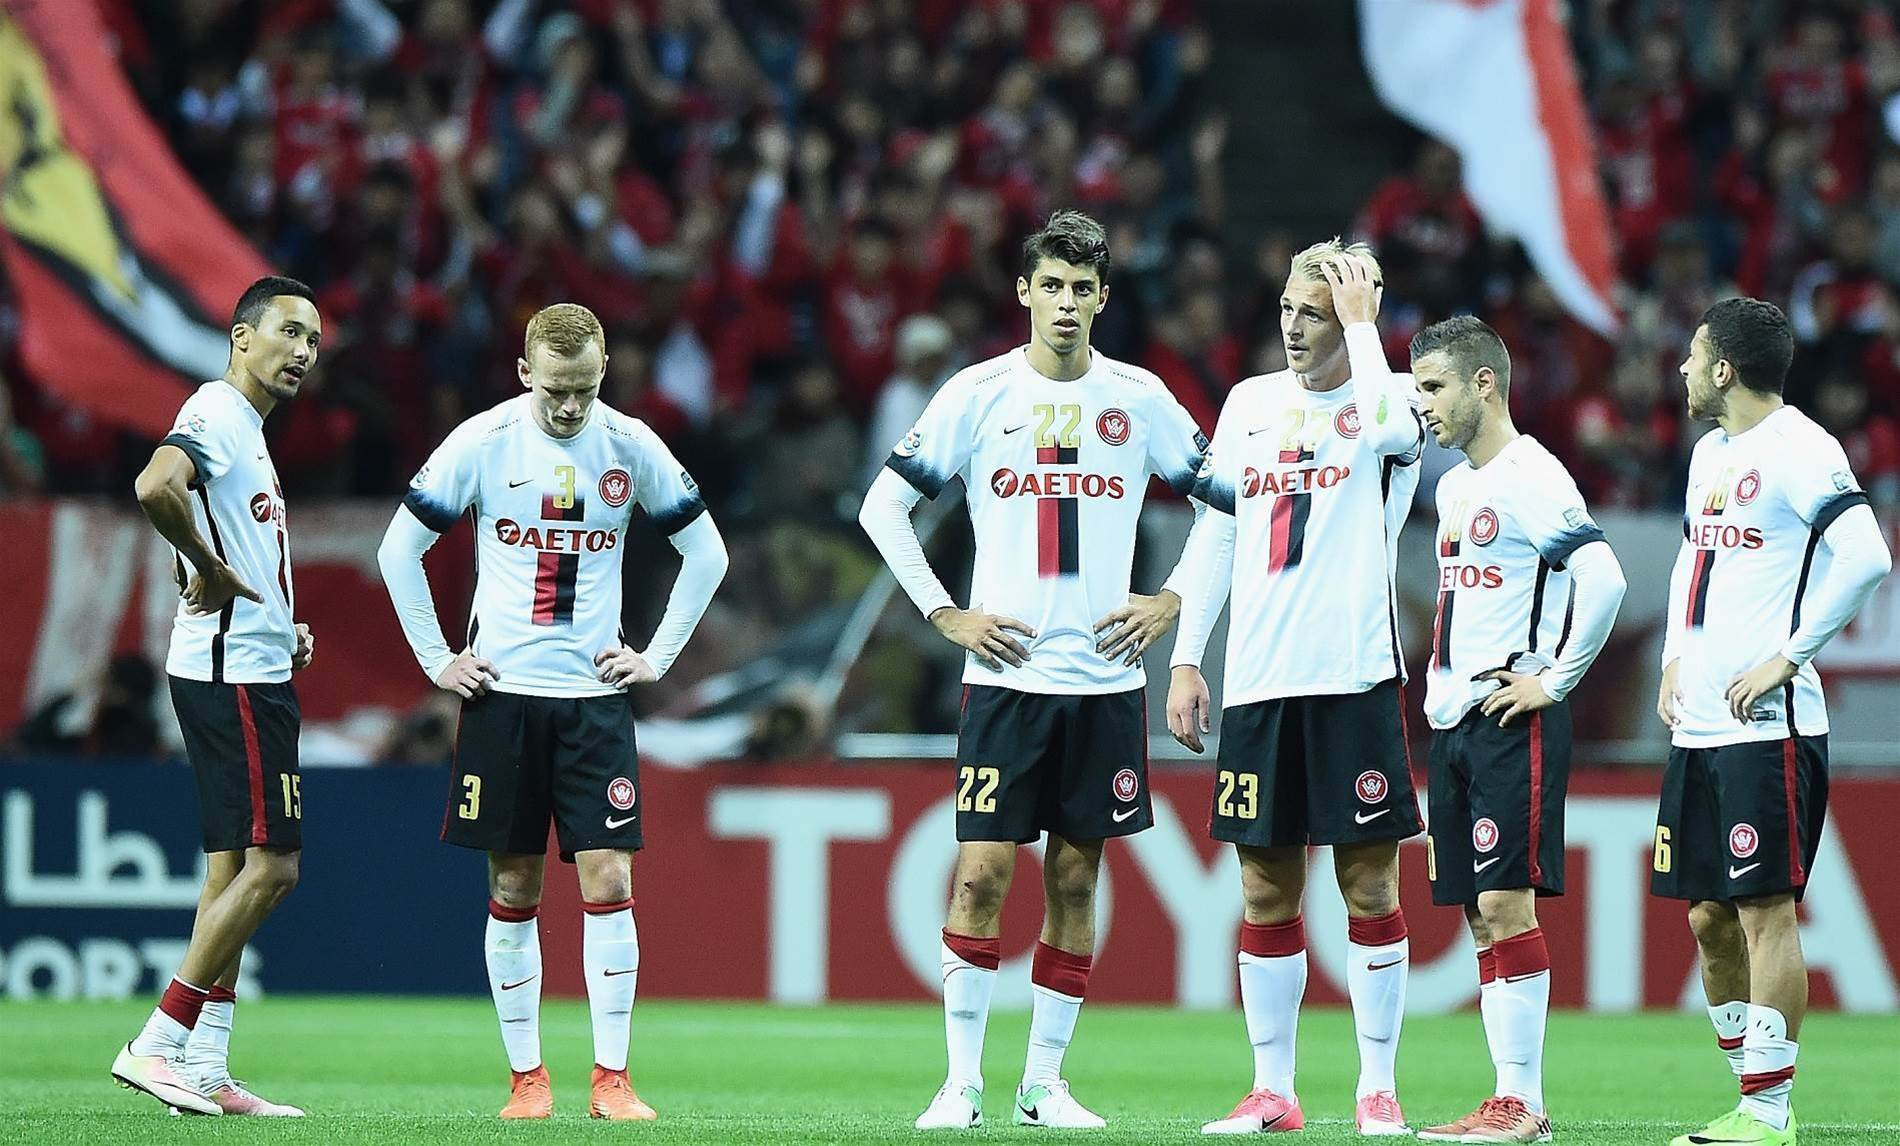 Why are Australian clubs failing in Asia?